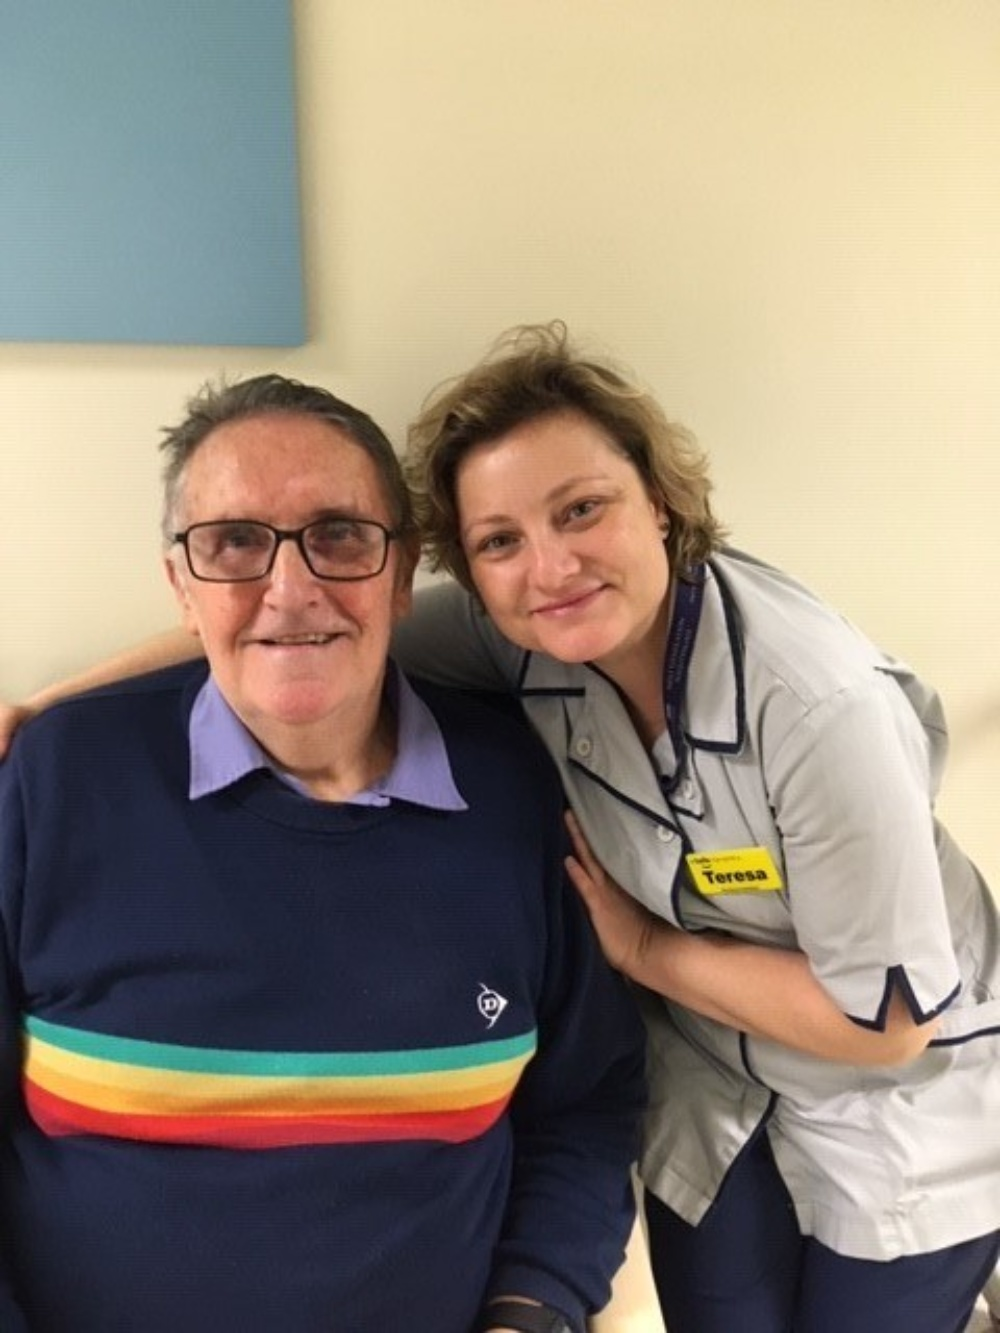 A man smiling at the camera with his nurse next to him